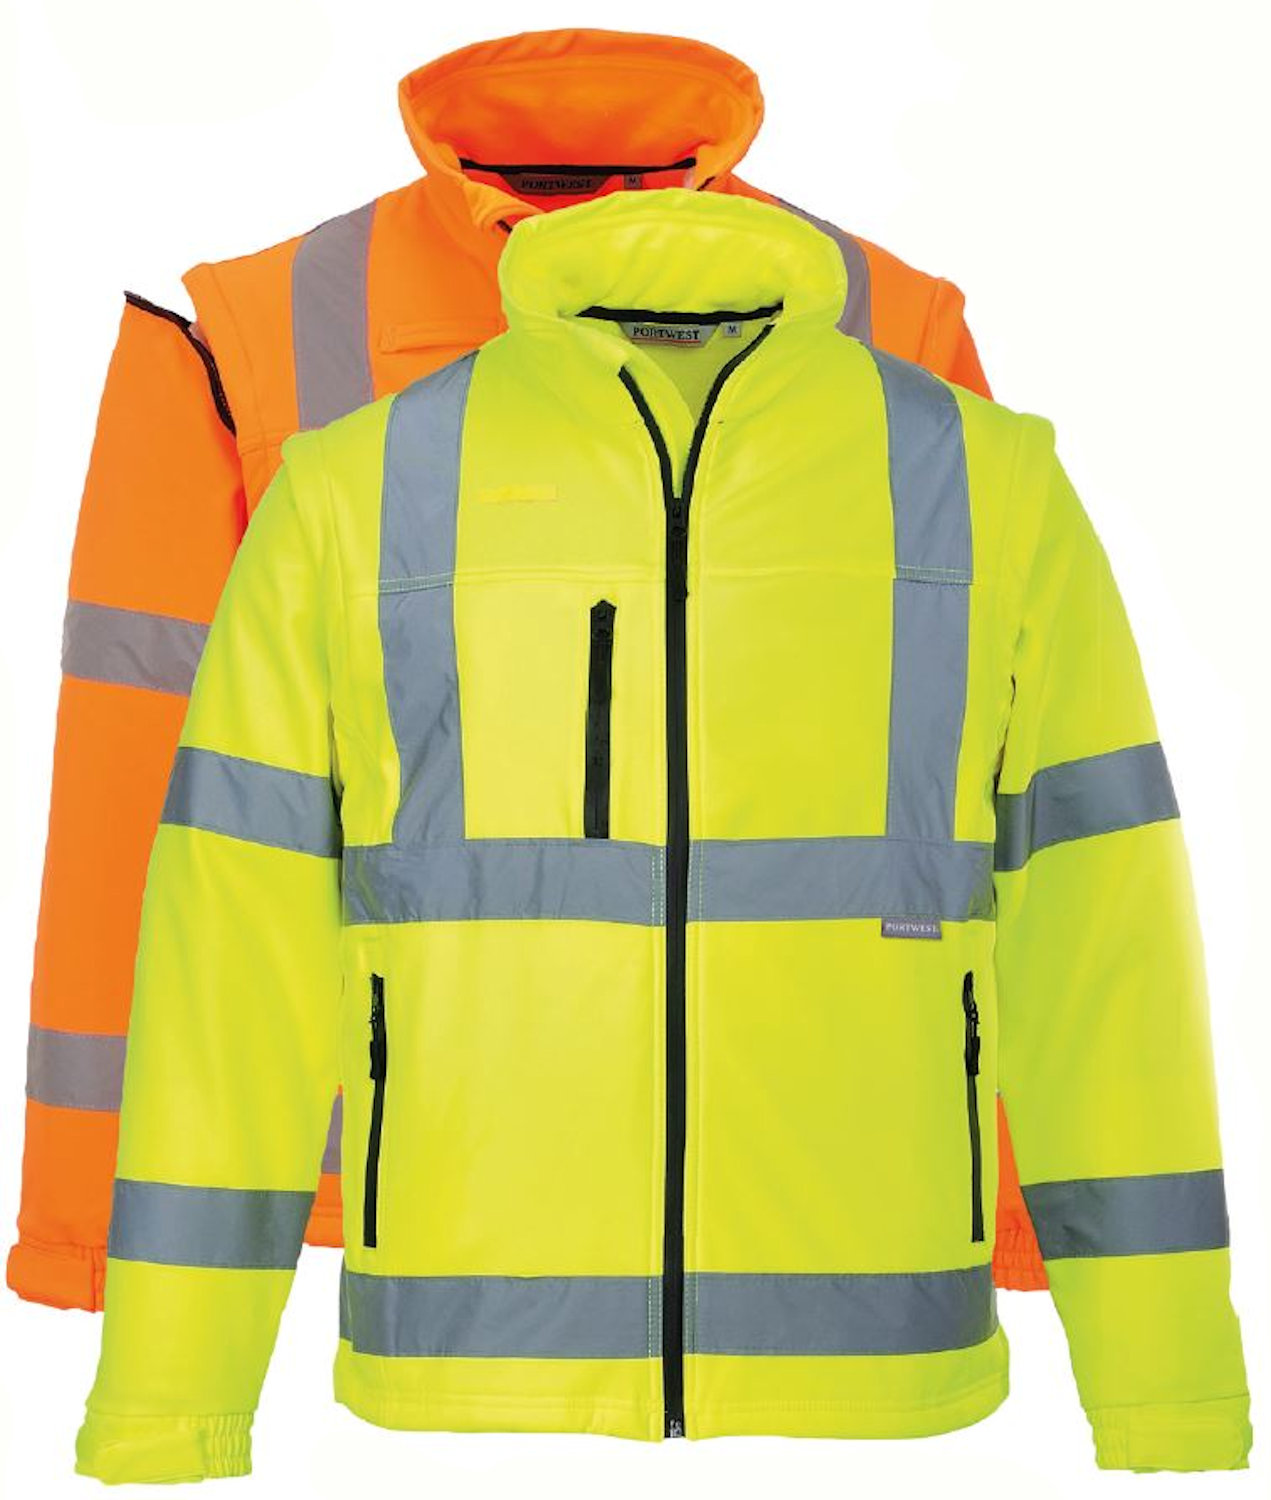 Portwest US428 Softshell